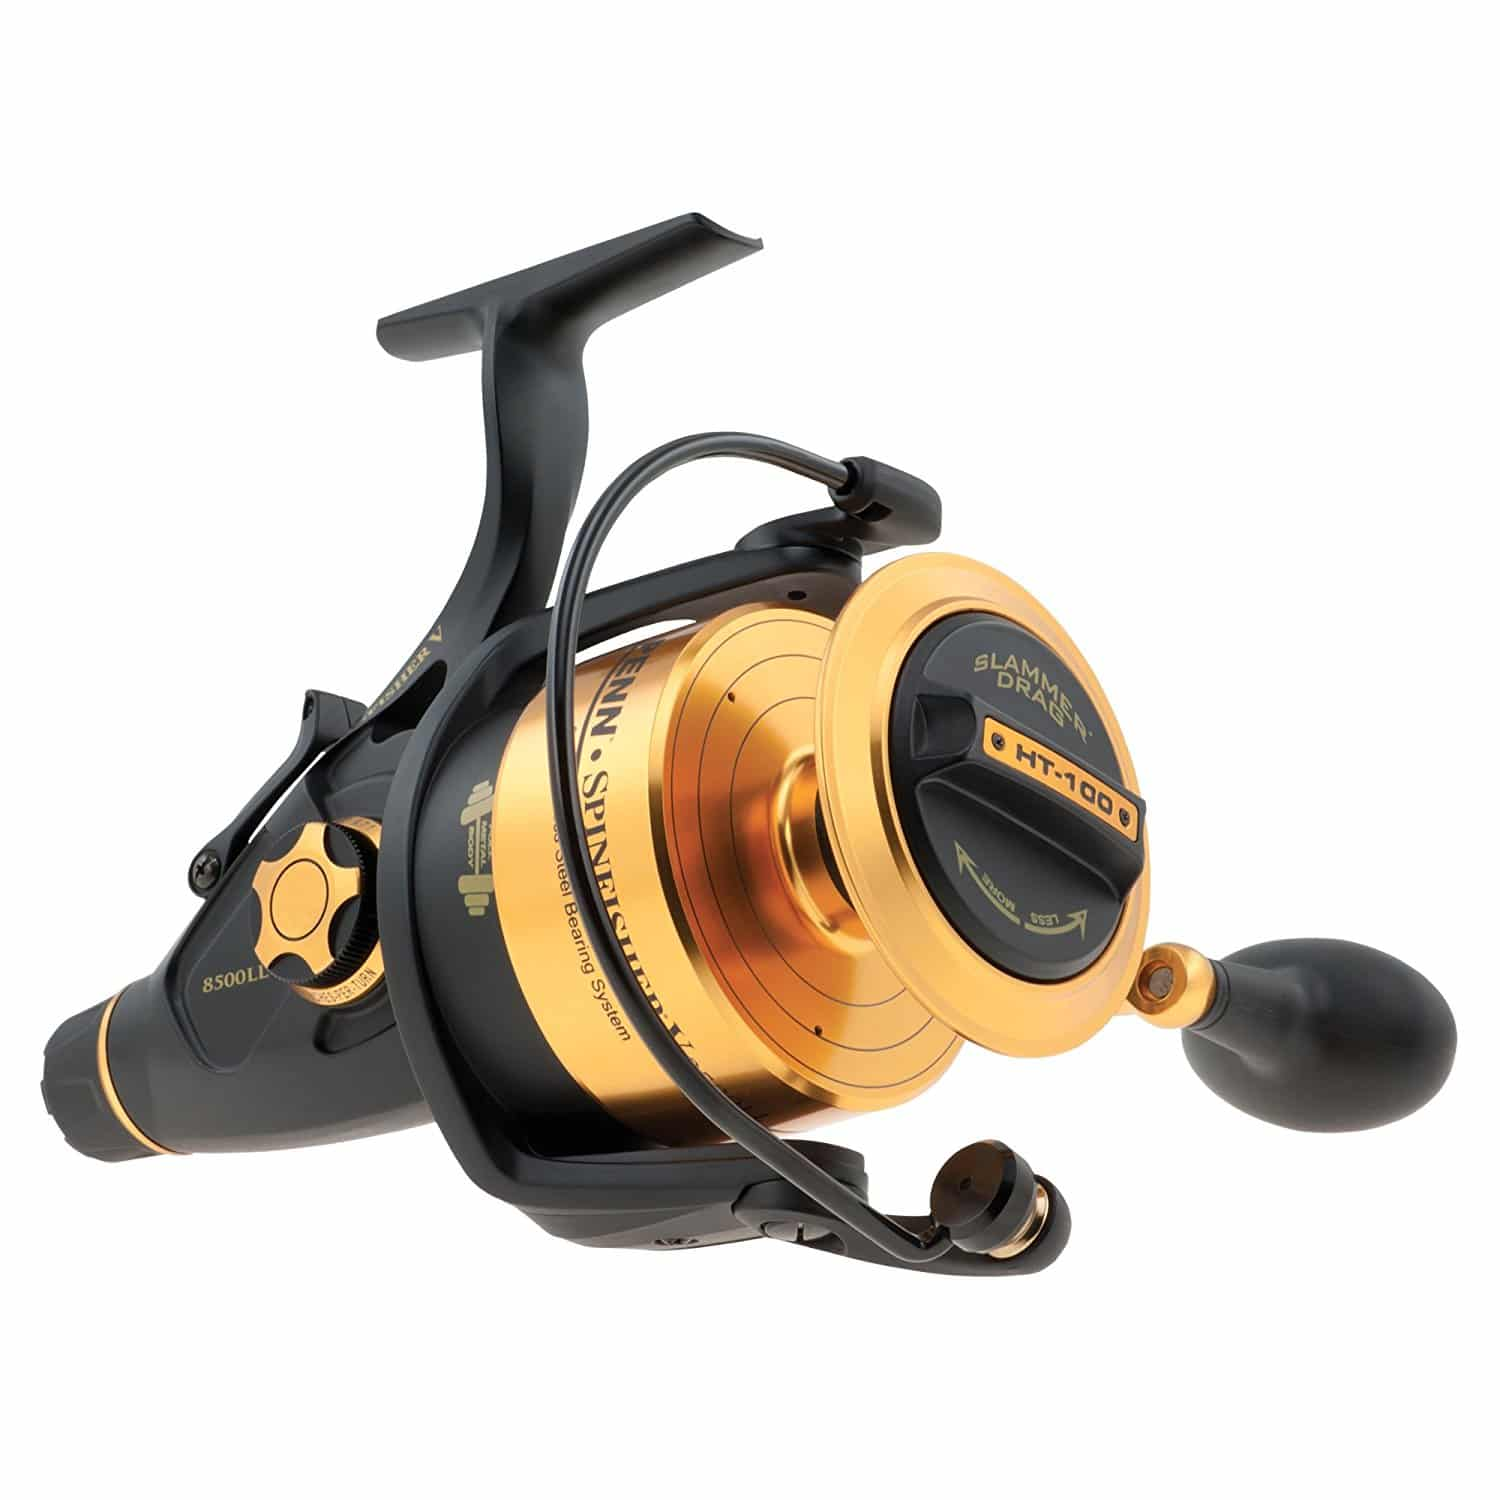 Top 10 best spinning reels in 2018 buyer 39 s guide may 2018 for Best spinning reel for bass fishing